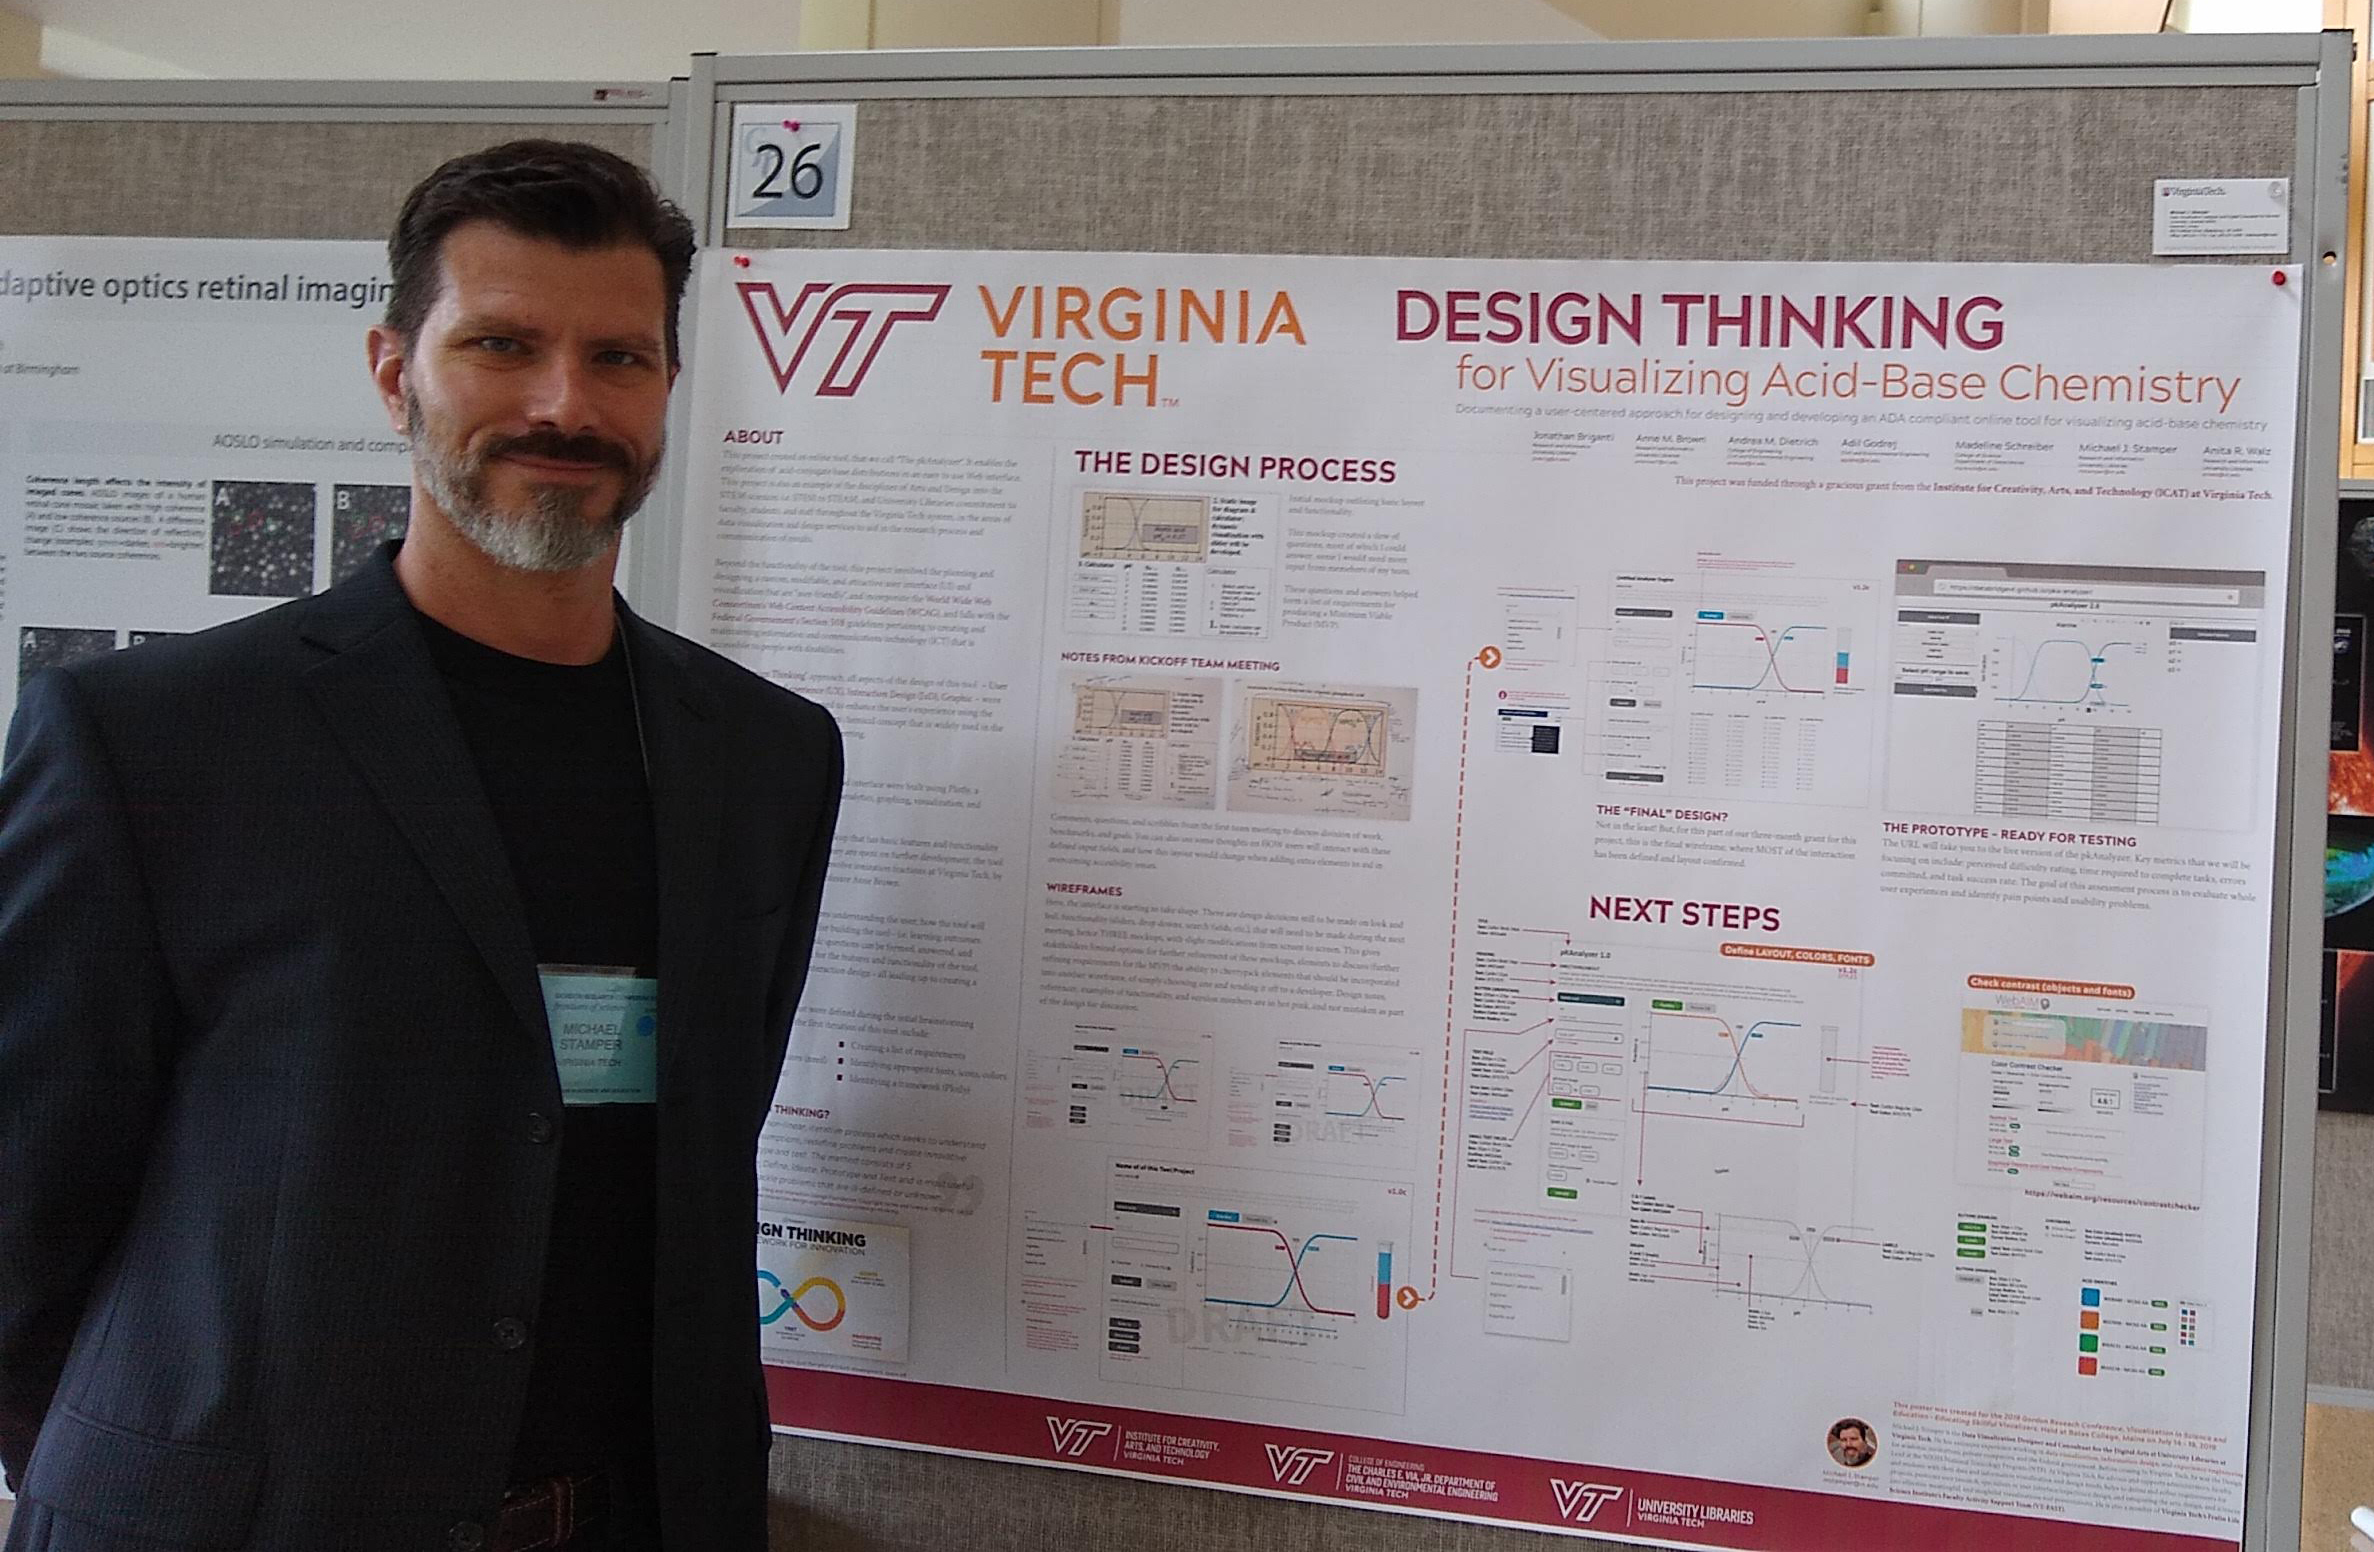 """PRESENTING A POSTER ON """"DESIGN THINKING"""" AND DESIGN (VISUAL/UI/UX) THAT I IMPLEMENTED FOR A GRANT-FUNDED PROJECT. THIS WAS AT THE 2019 GORDON RESEARCH CONFERENCE ON DATA VISUALIZATION & EDUCATION (HTTPS://BIT.LY/2Y3XBTP)."""